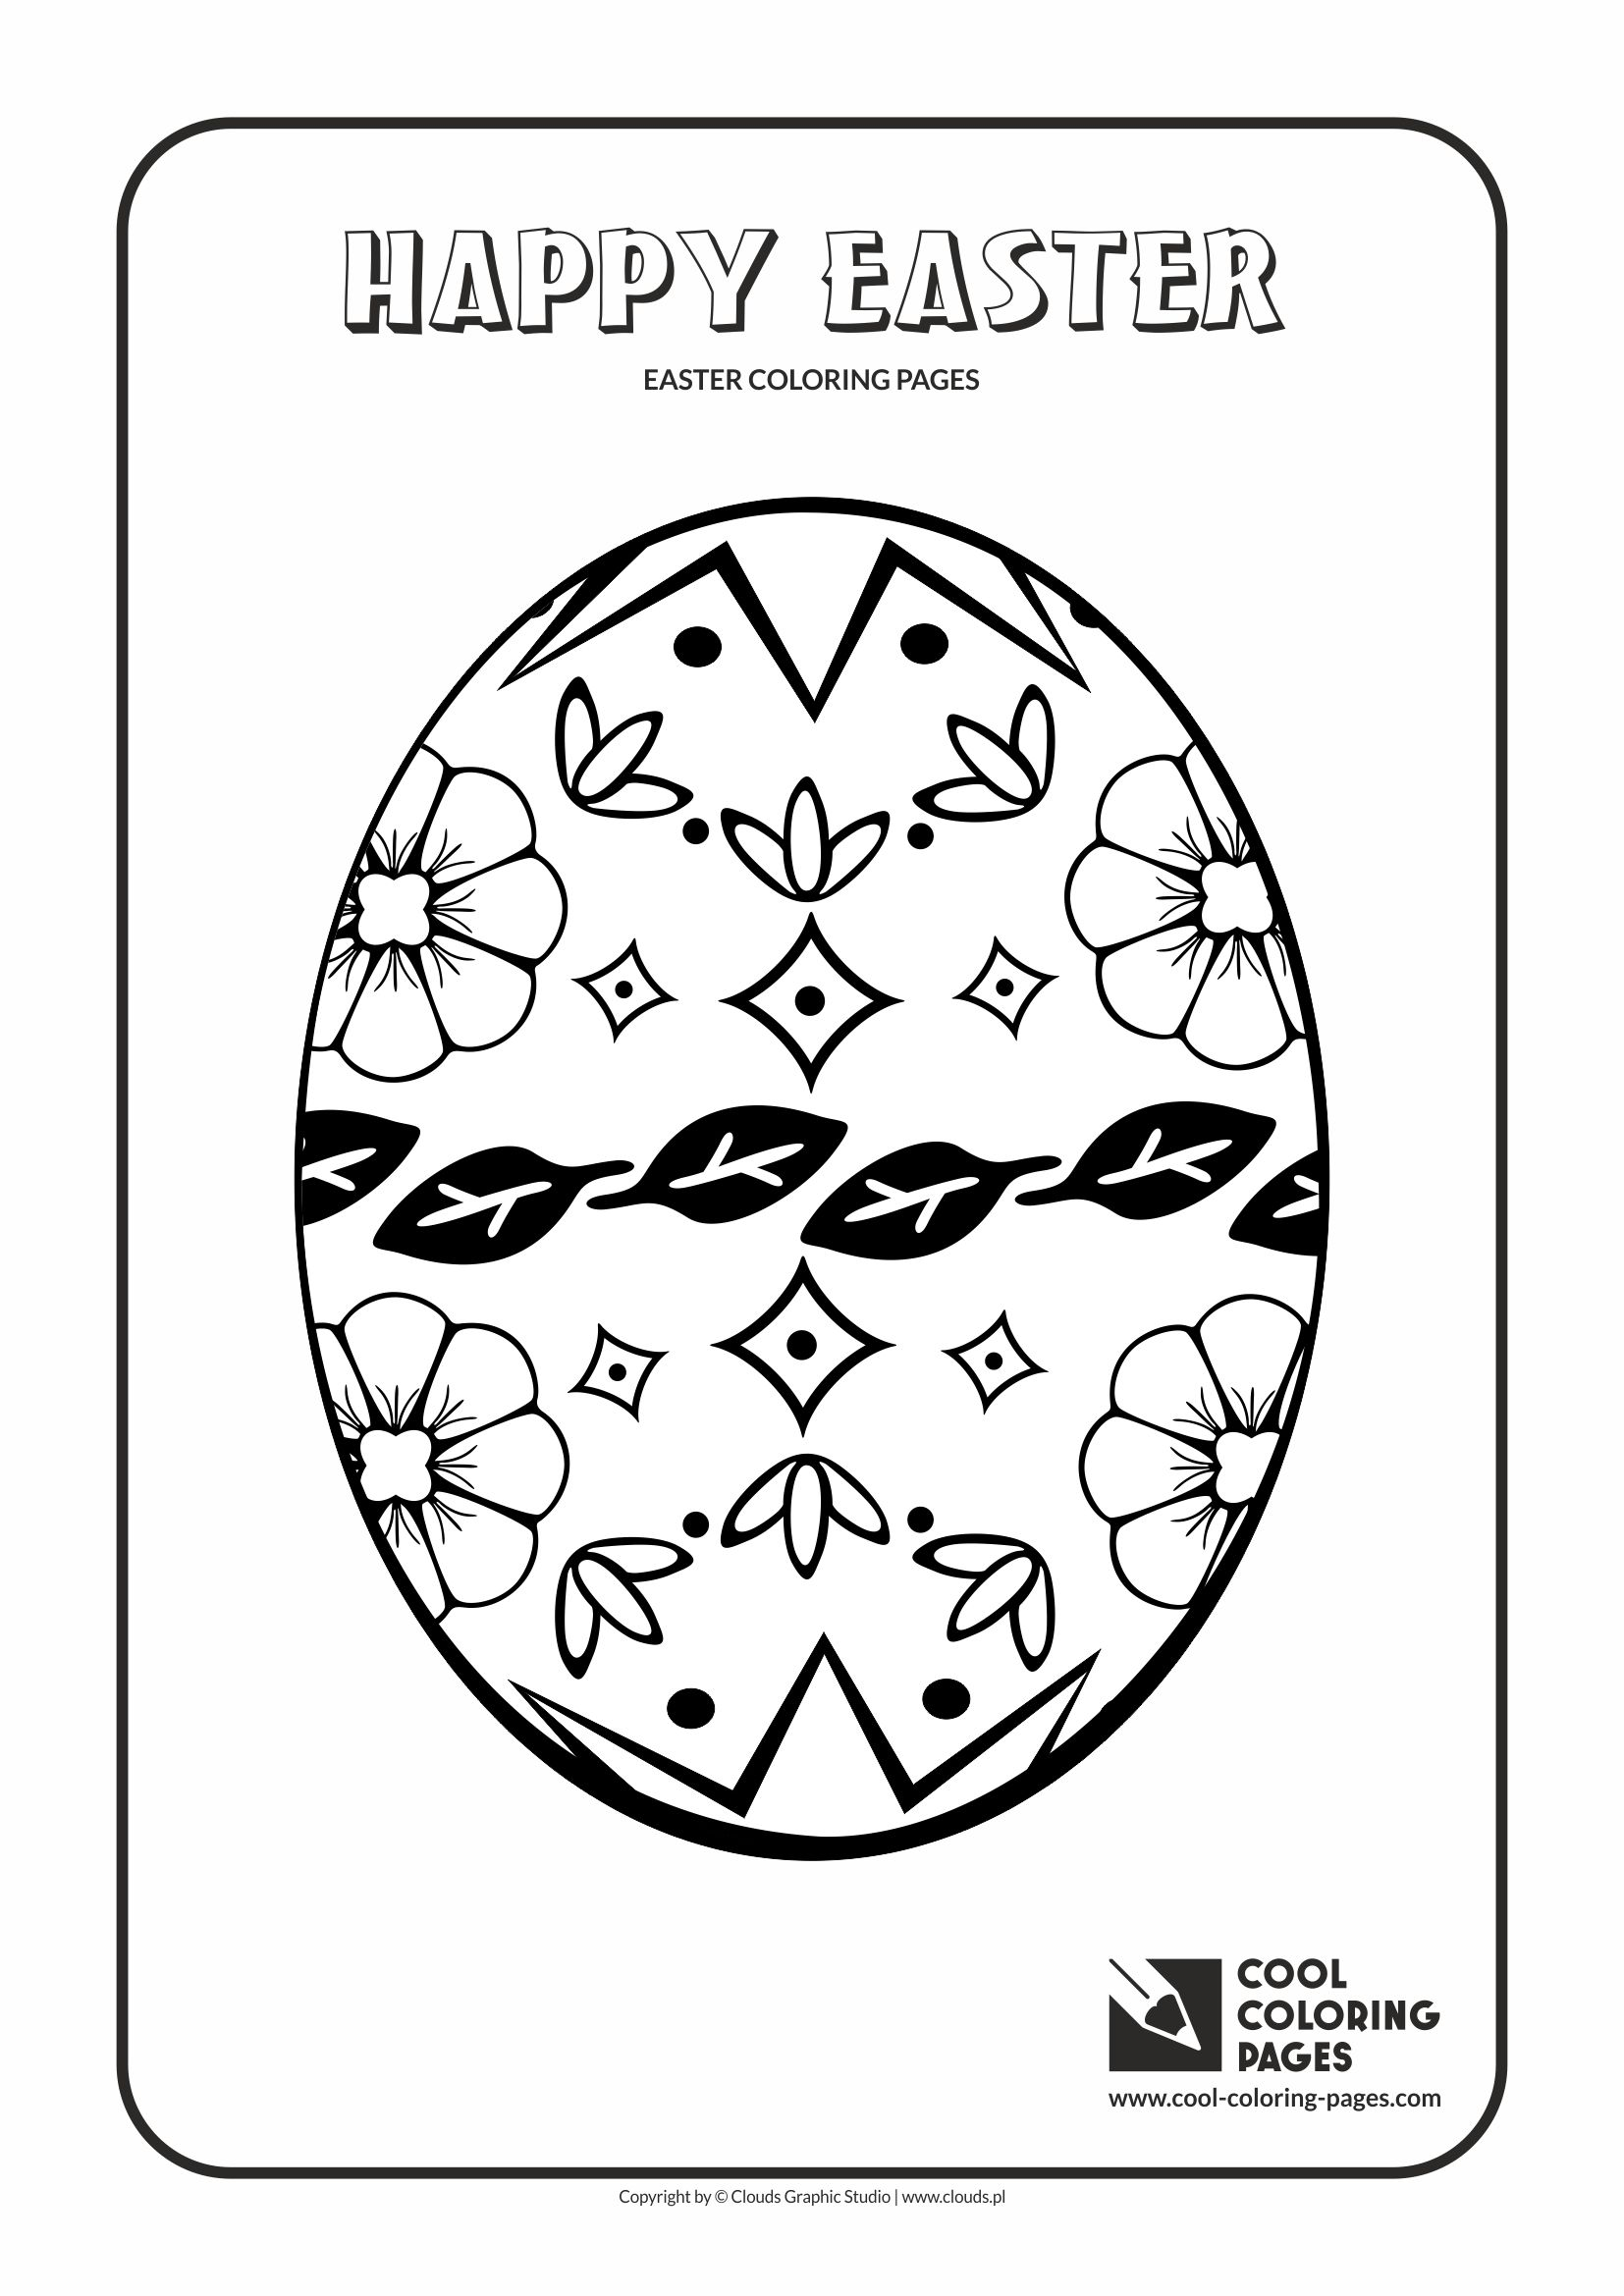 Cool Coloring Pages - Holidays / Easter egg no 3 / Coloring page with Easter egg no 3